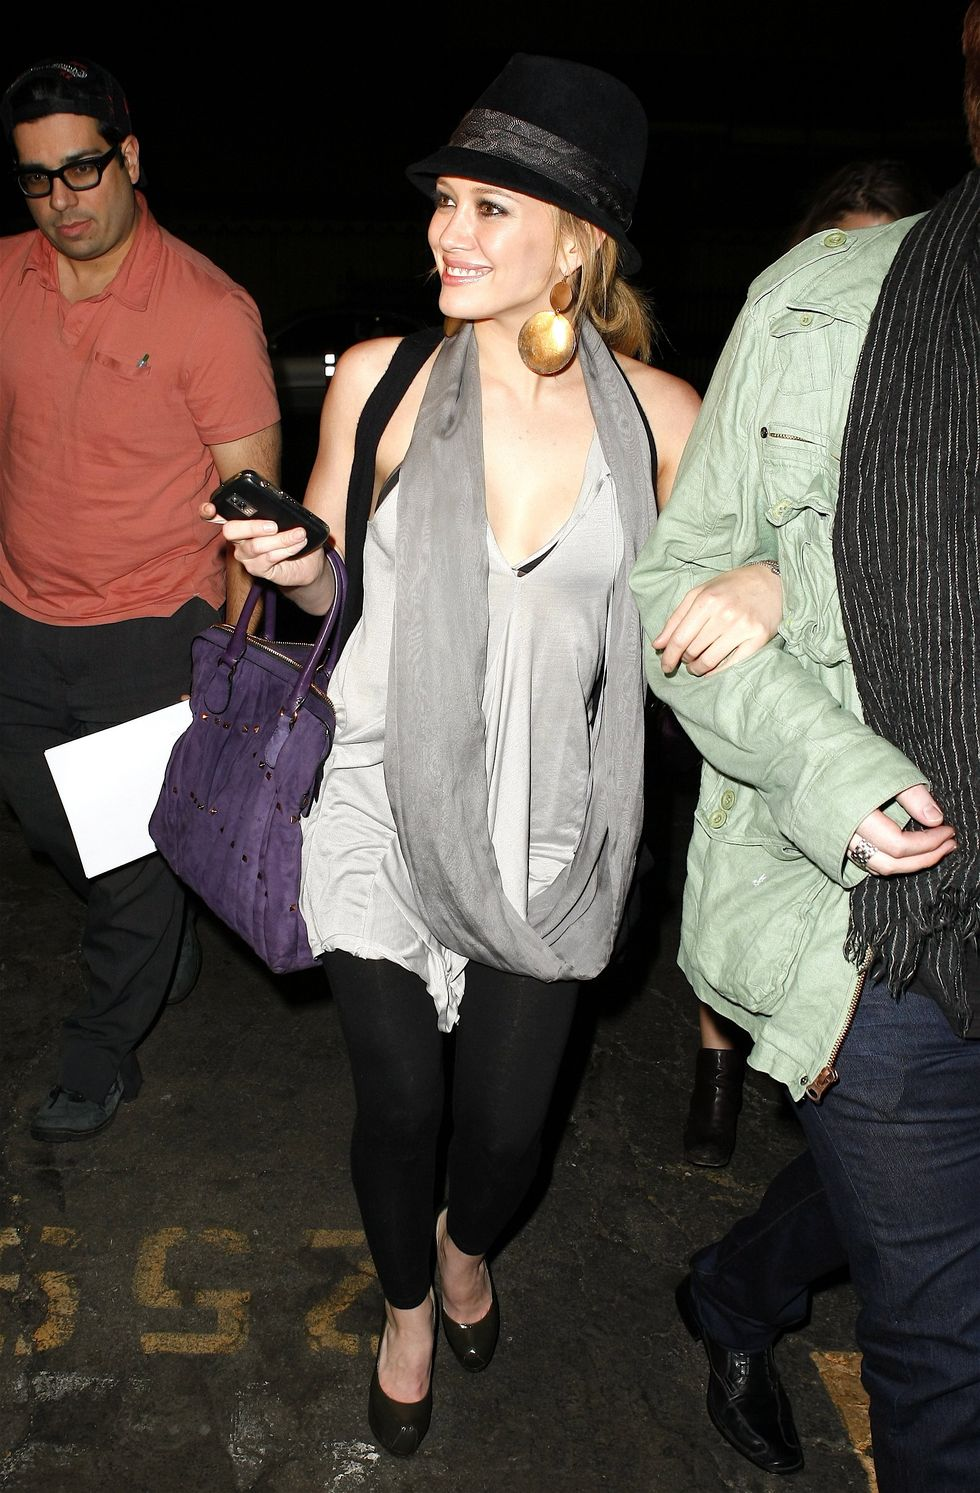 hilary-duff-at-club-bardot-in-hollywood-01